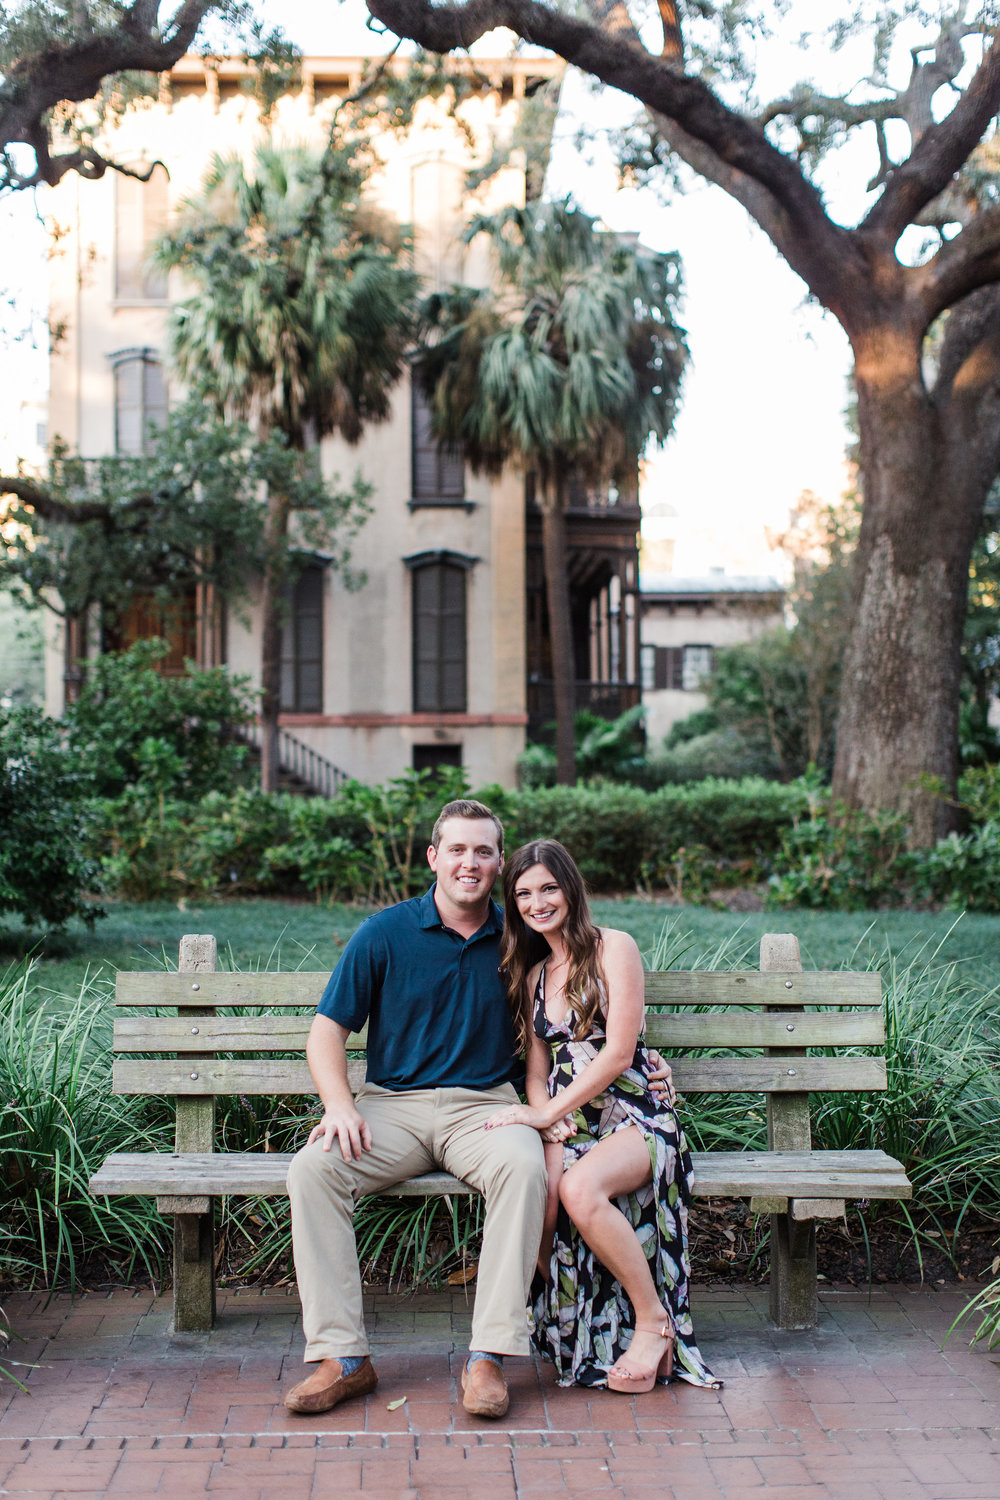 Apt-b-photography-savannah-wedding-photographer-savannah-wedding-lowcountry-wedding-georgia-wedding-savannah-engagement-engagement-photographer-surprise-engagement-photographer-savannah-squares-10.jpg